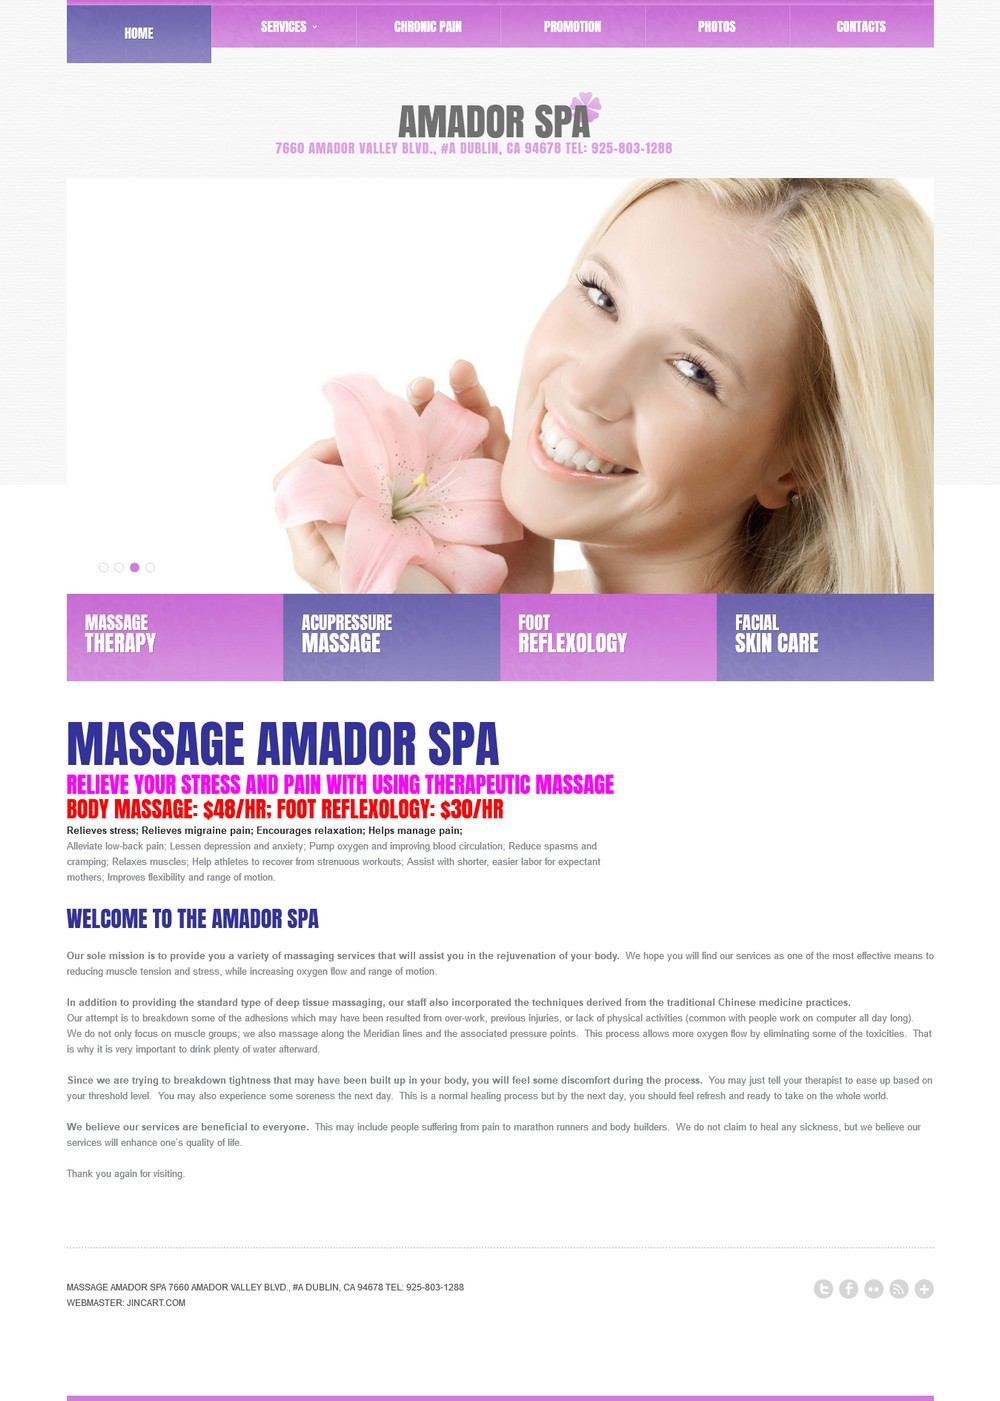 Massage Amador Spa - Successfully Delivered Projects On-Time and On-Budget. Improved Website Conversation Rate By 80% Against Existing Control.